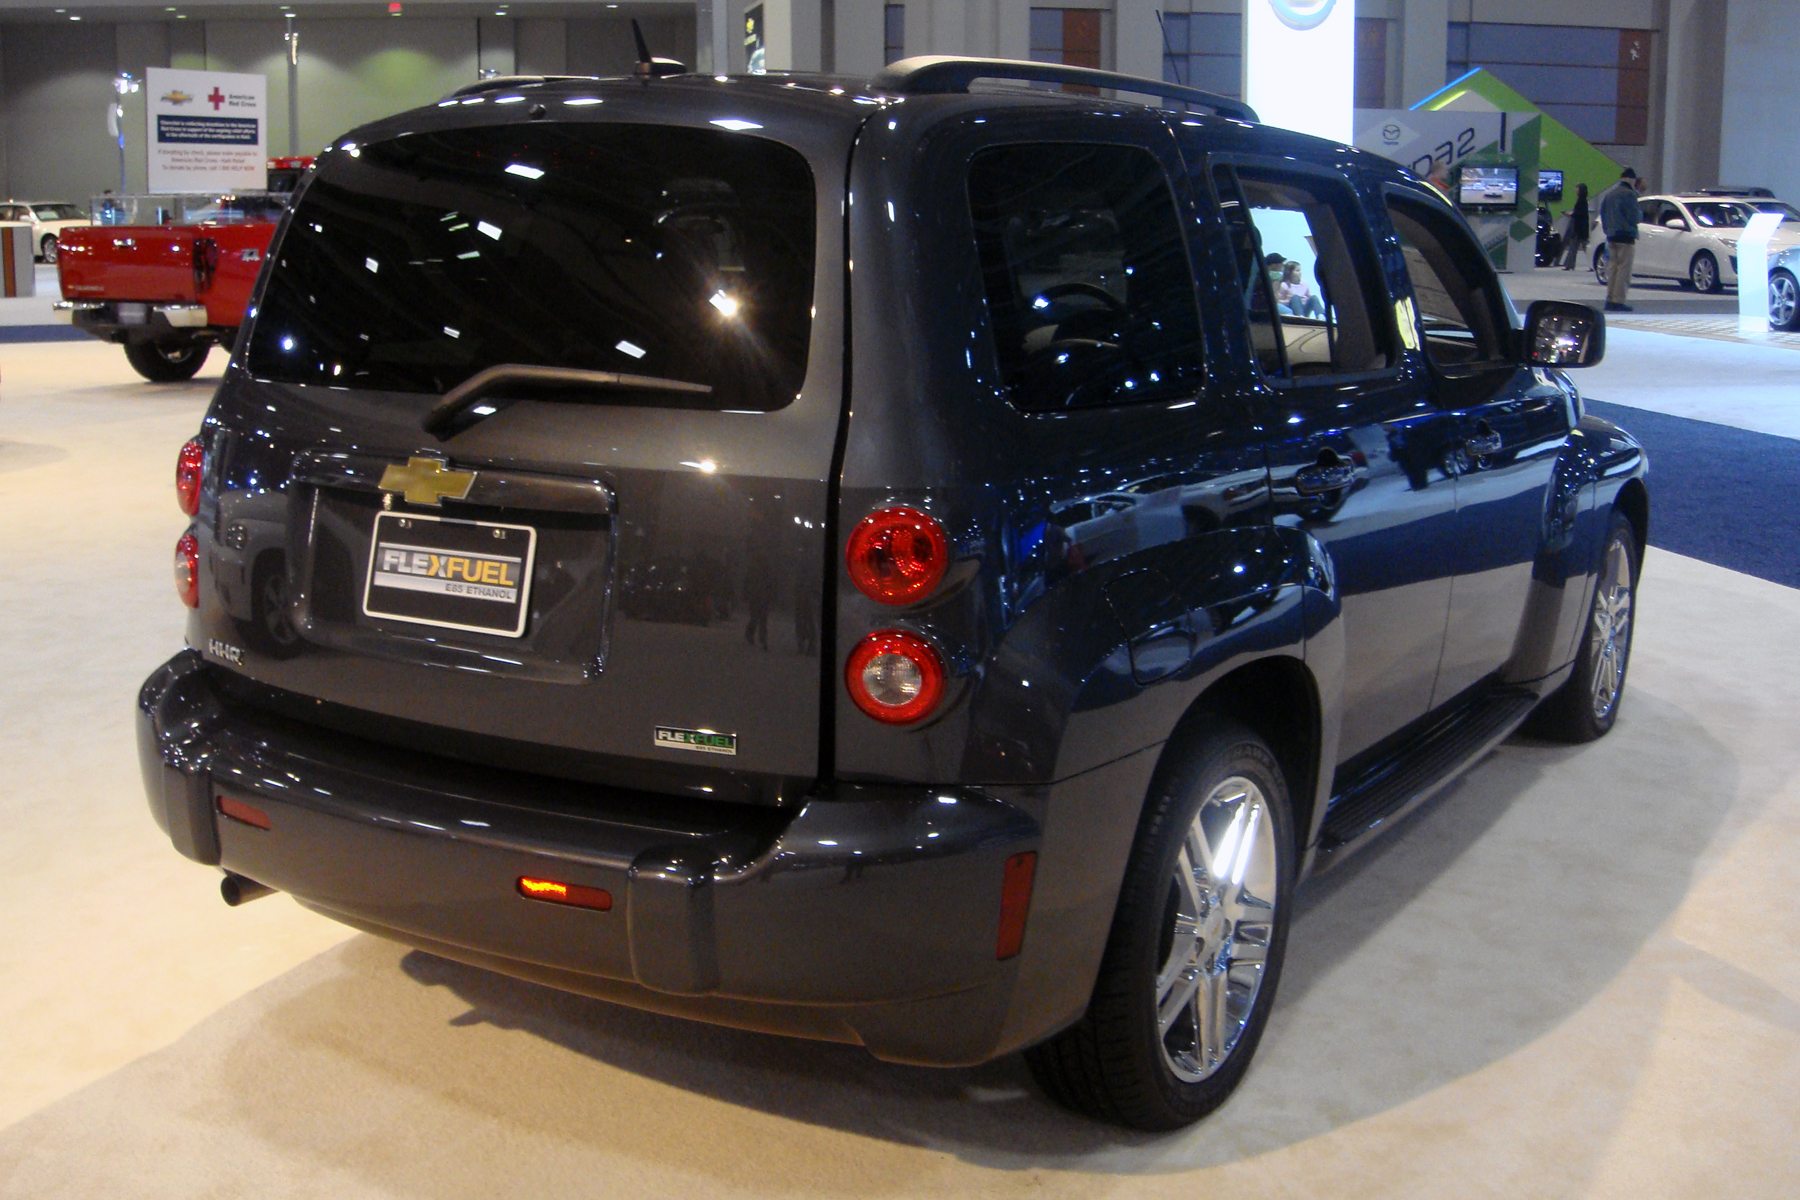 file chevrolet hhr flex fuel was 2010 8837 jpg wikimedia. Black Bedroom Furniture Sets. Home Design Ideas